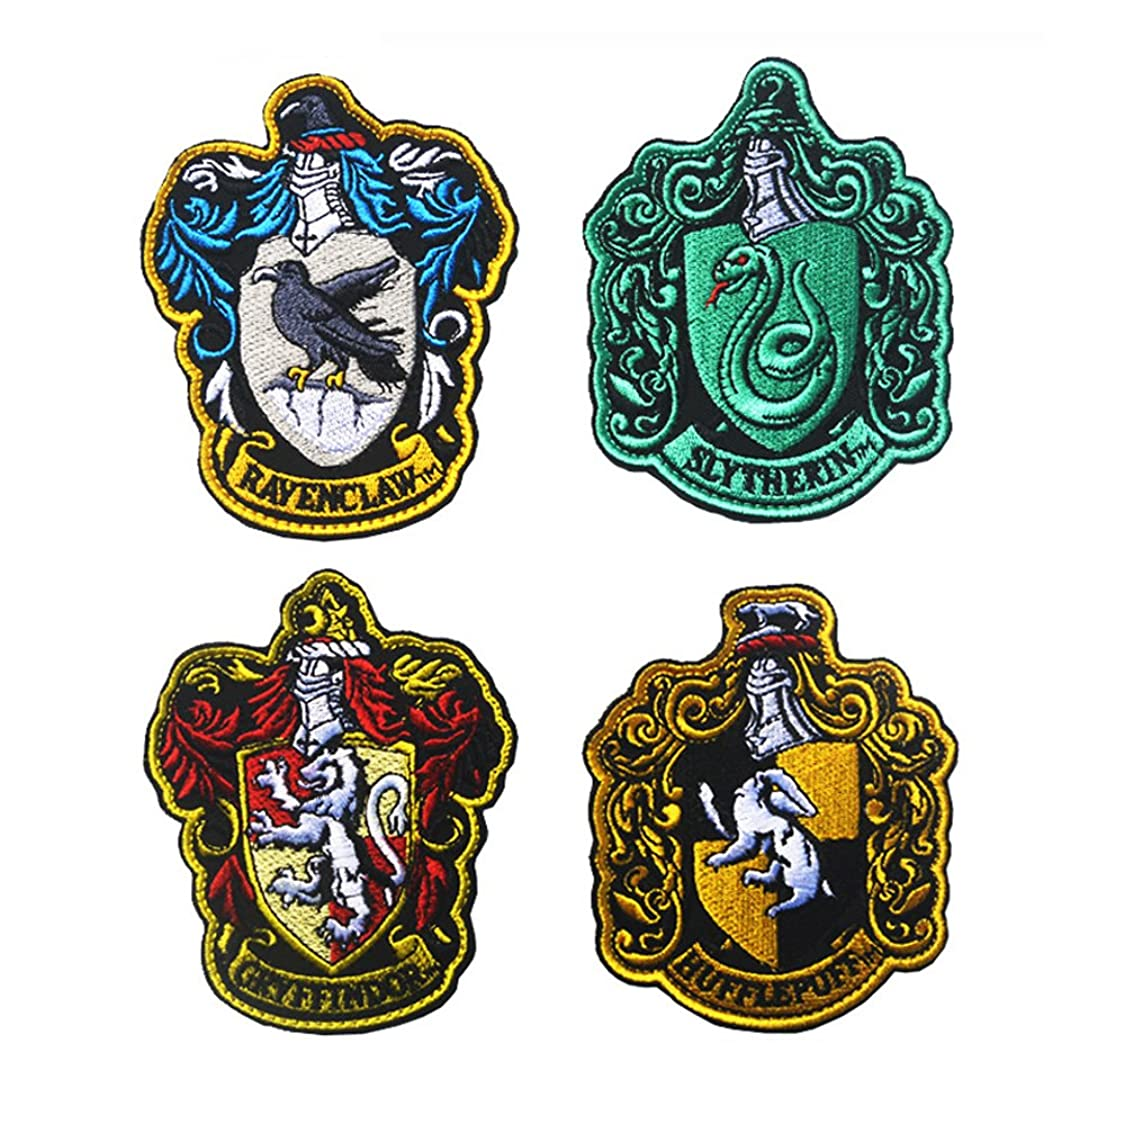 Harry Potter House of Gryffindor Crest, Slytherin, Ravenclaw, Huflepuff and Hogwarts Embroidered Patch Applique for Coat Jacket Gear Cap Hat Backpack (Set 4) ah92628819686101